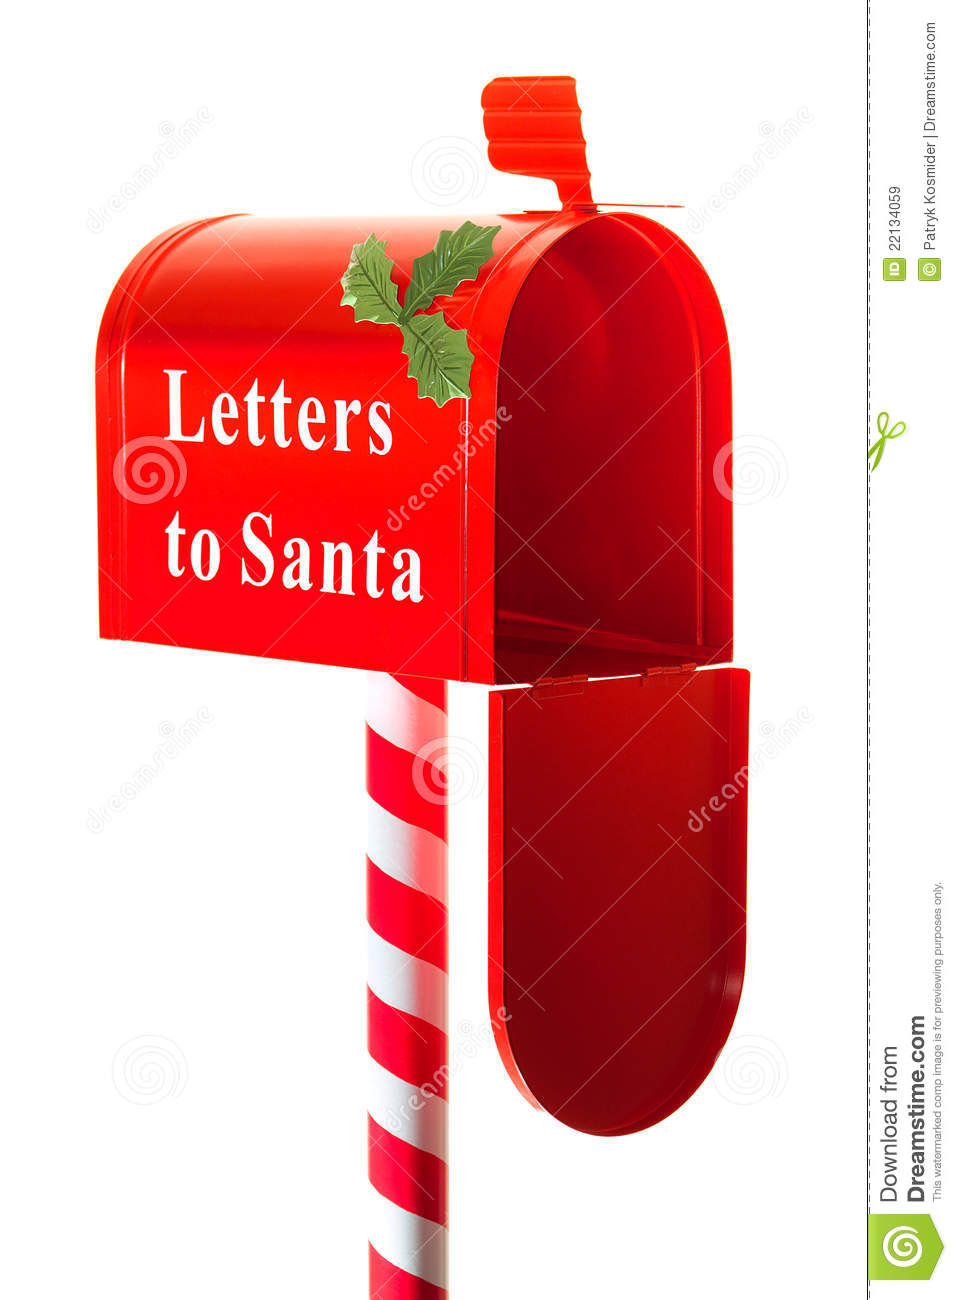 christmas letter box to santa royalty free stock images With santa letter box